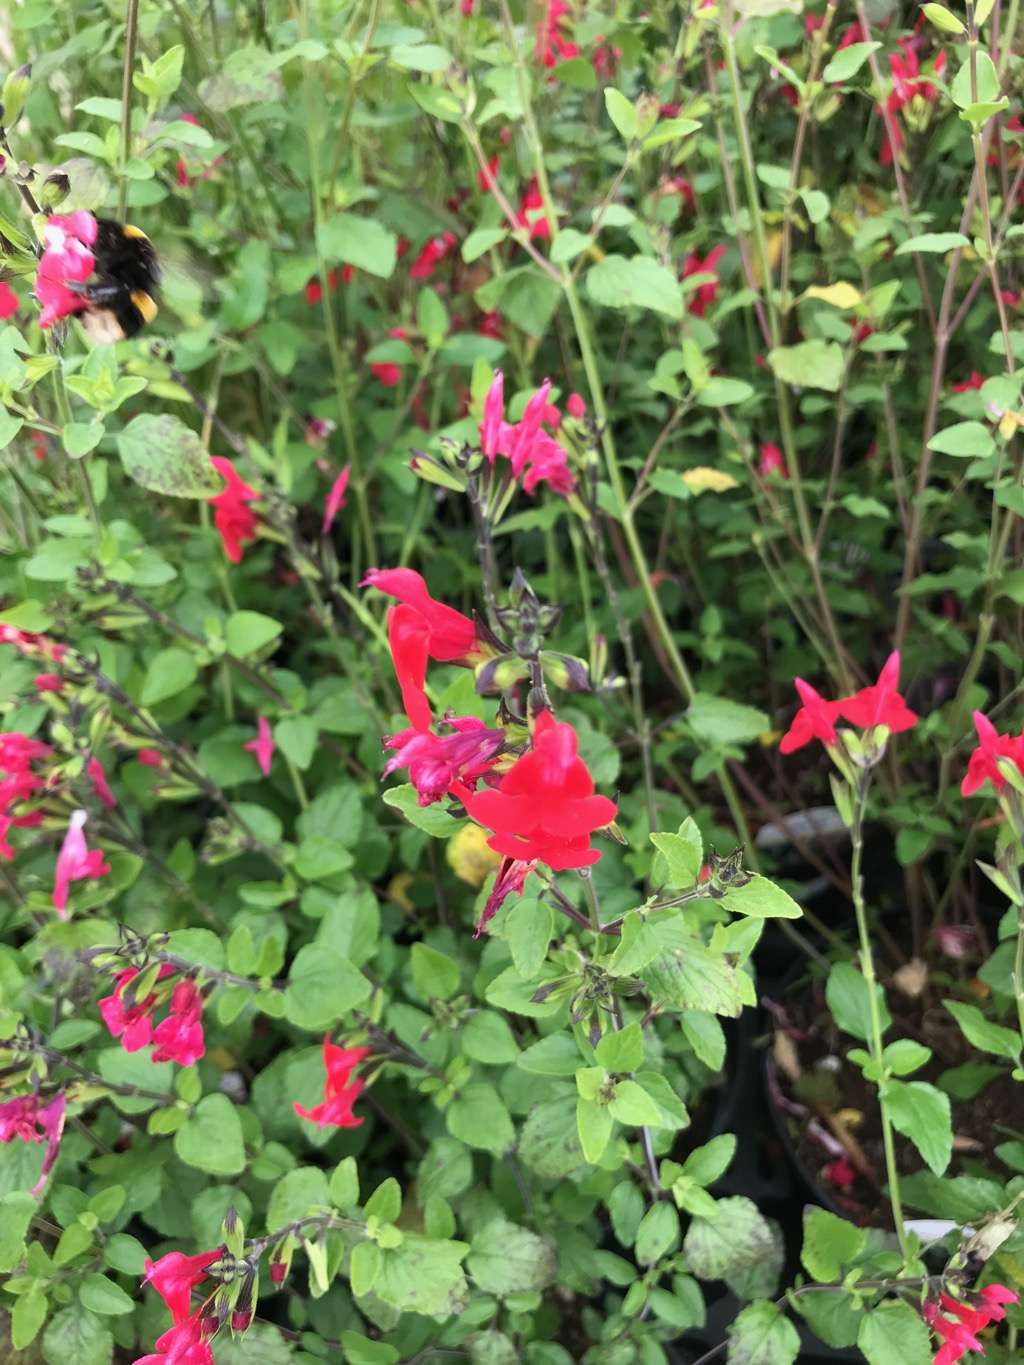 Salvia × jamensis is a bushy shrub to 100 x 50cm, evergreen in mild localities like Melbourne, with aromatic ovate, toothed mid-green leaves. Suitable for both Beds and Borders the wonderful flowers can be Bright Red, rose-pink, salmon pink, orange or creamy yellow. Flowers in summer and autumn.